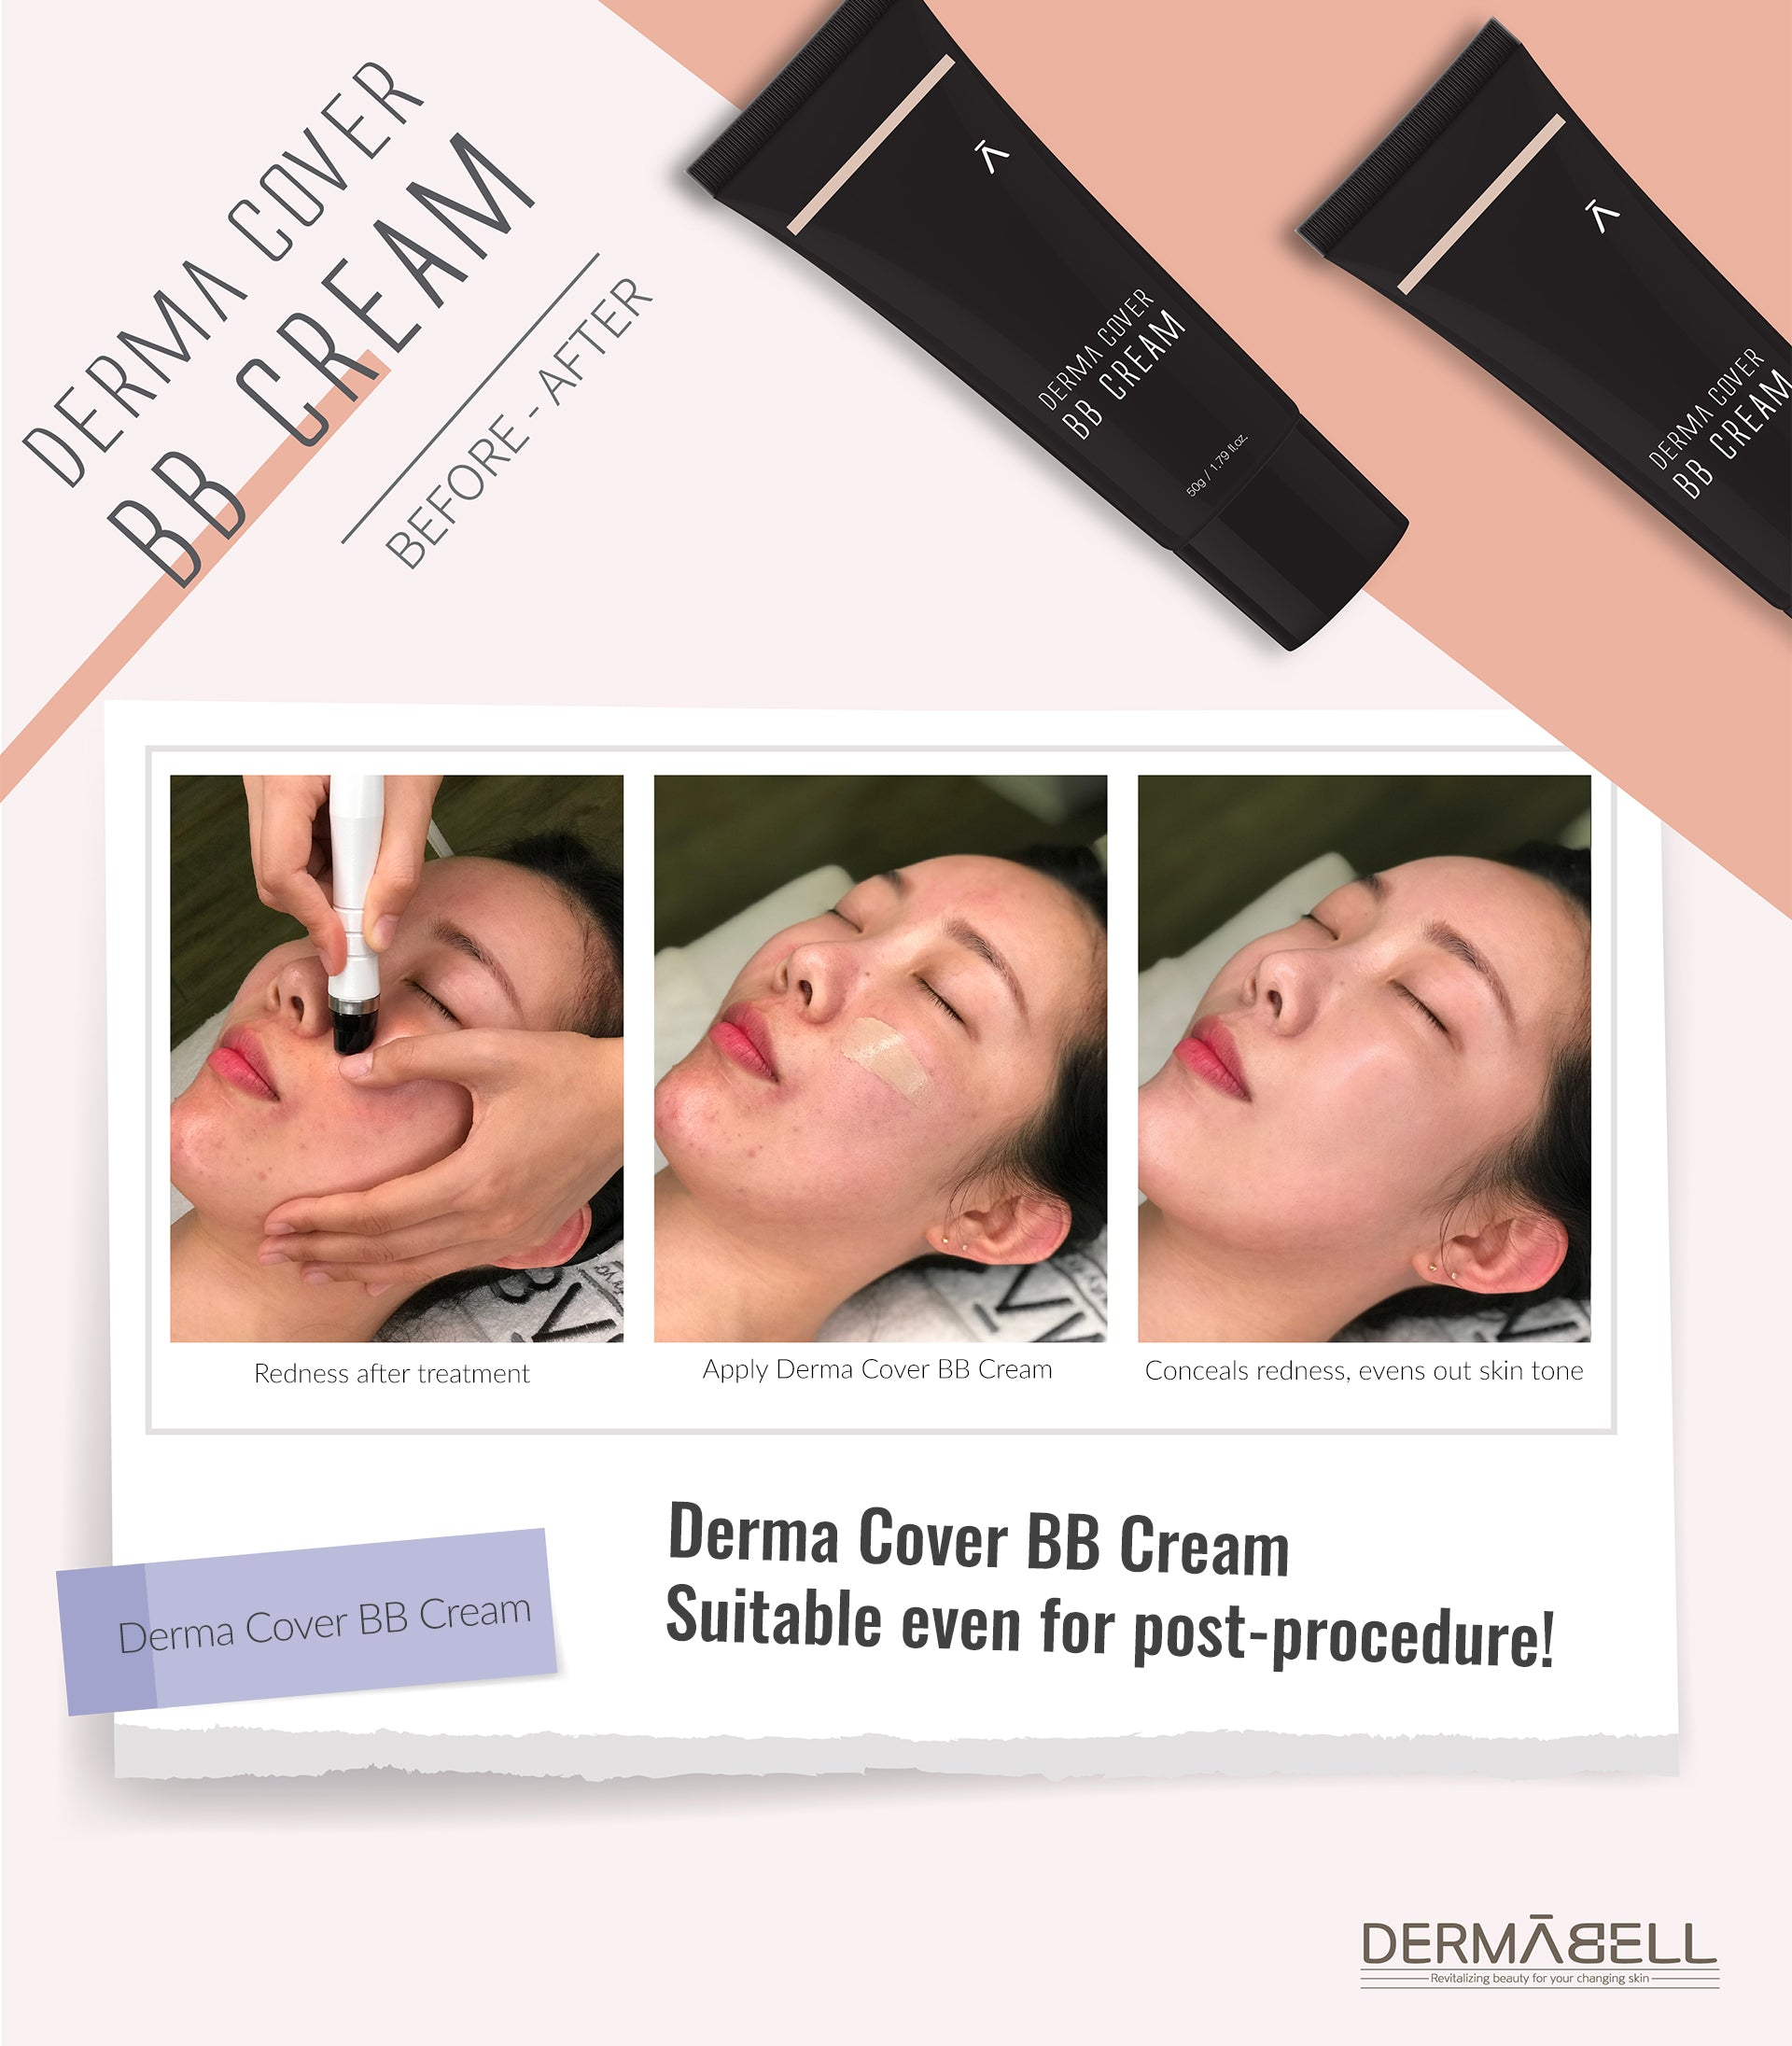 DERMABELL Derma Cover BB Cream